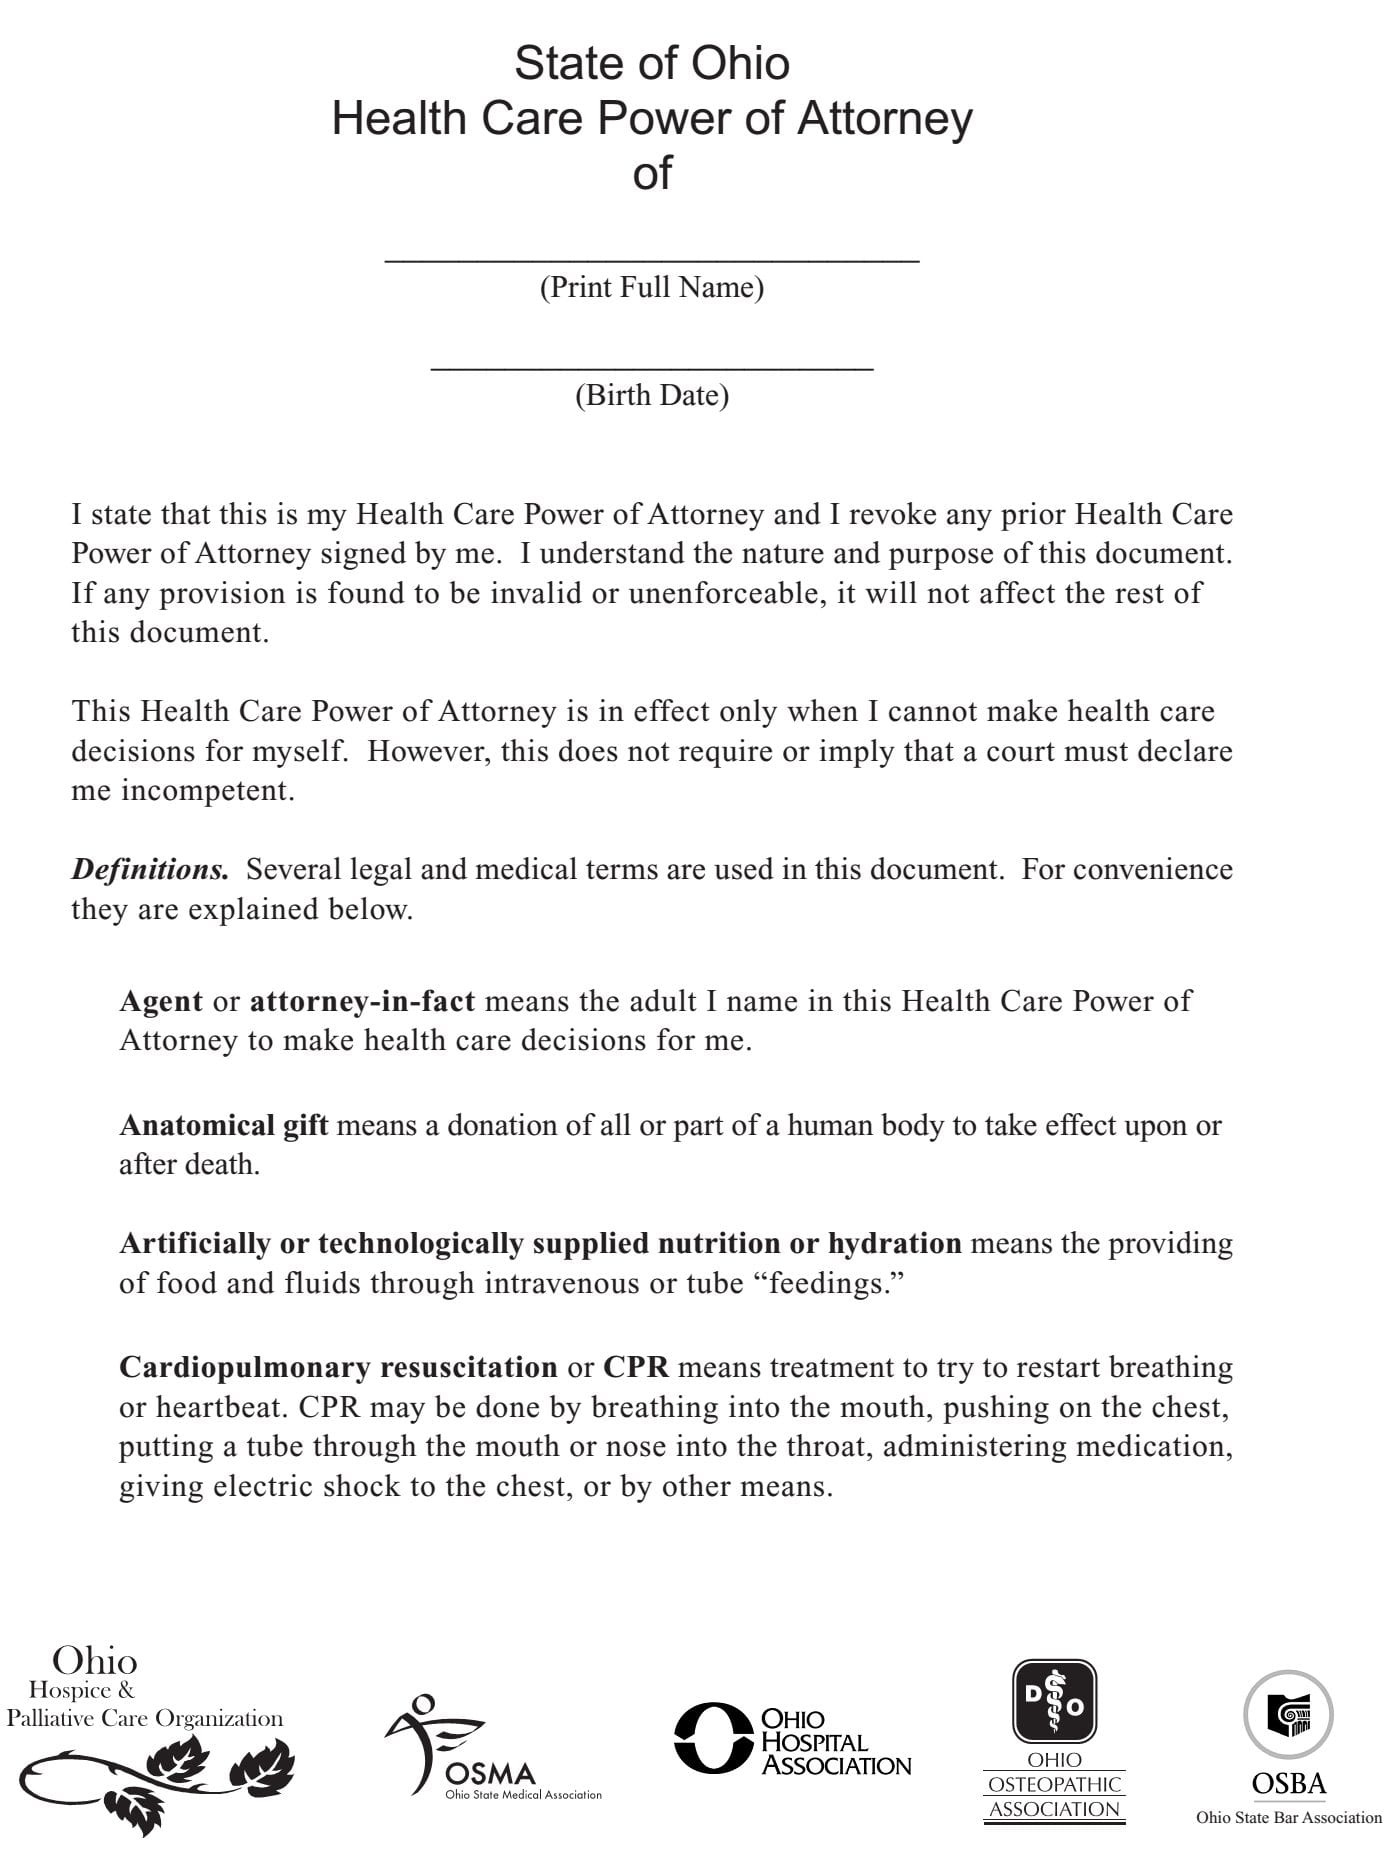 Ohio Health Care Power of Attorney Form